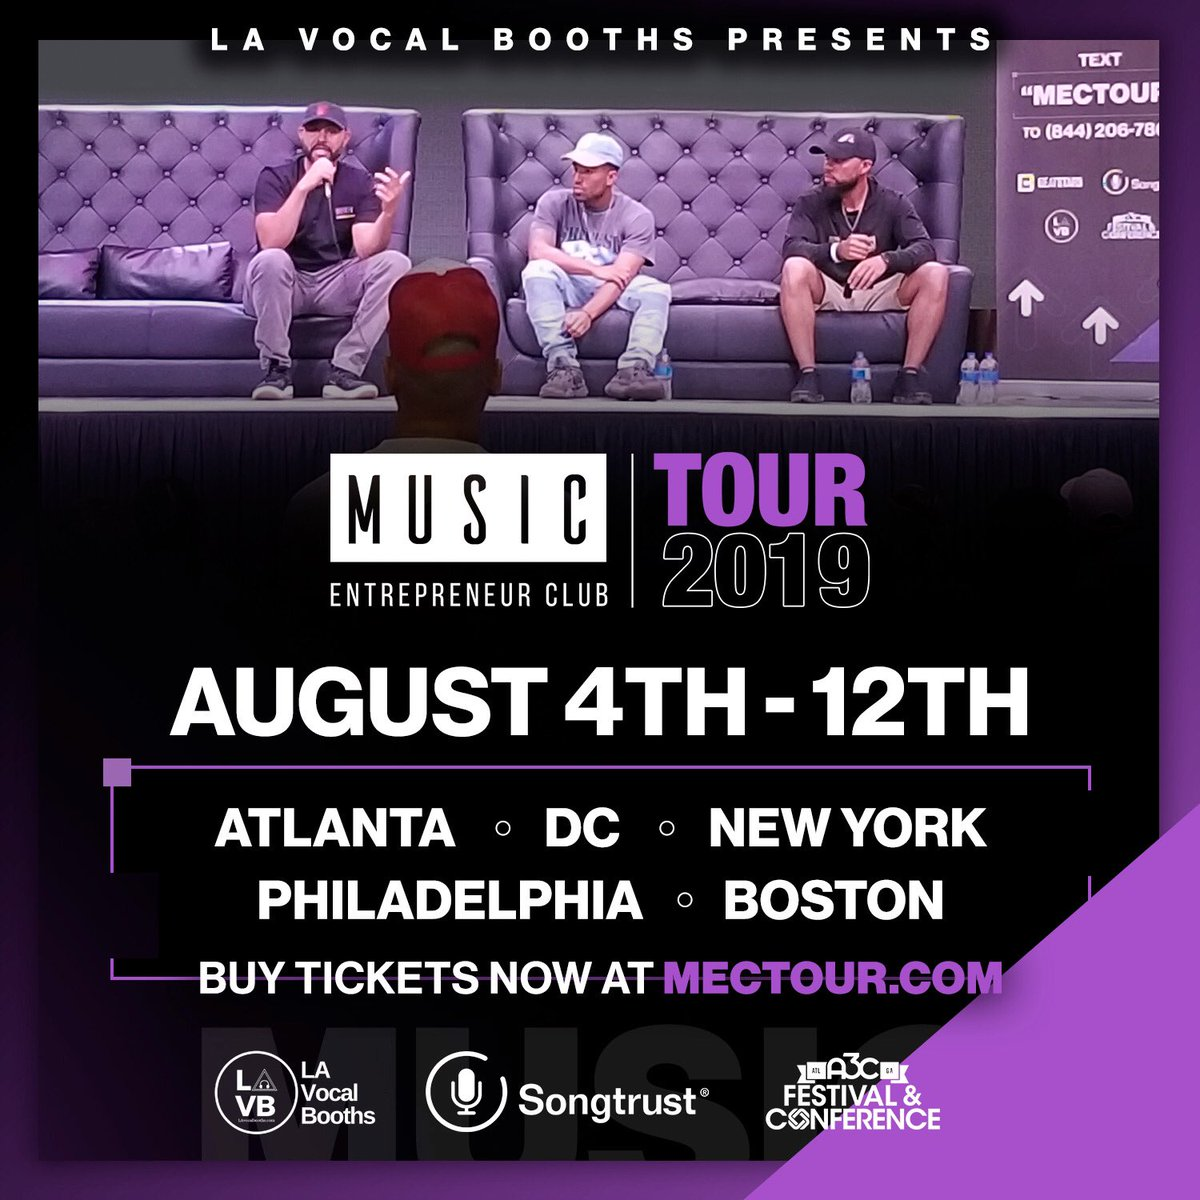 The Music Entrepreneur Club is hitting the road once again!   ATL, DC, Philly, NYC and Boston🔥  Presented by @LAvocalbooths Sponsored by @songtrust @A3C   Early bird tickets available through June👊🏽💎   http://MECTour.com